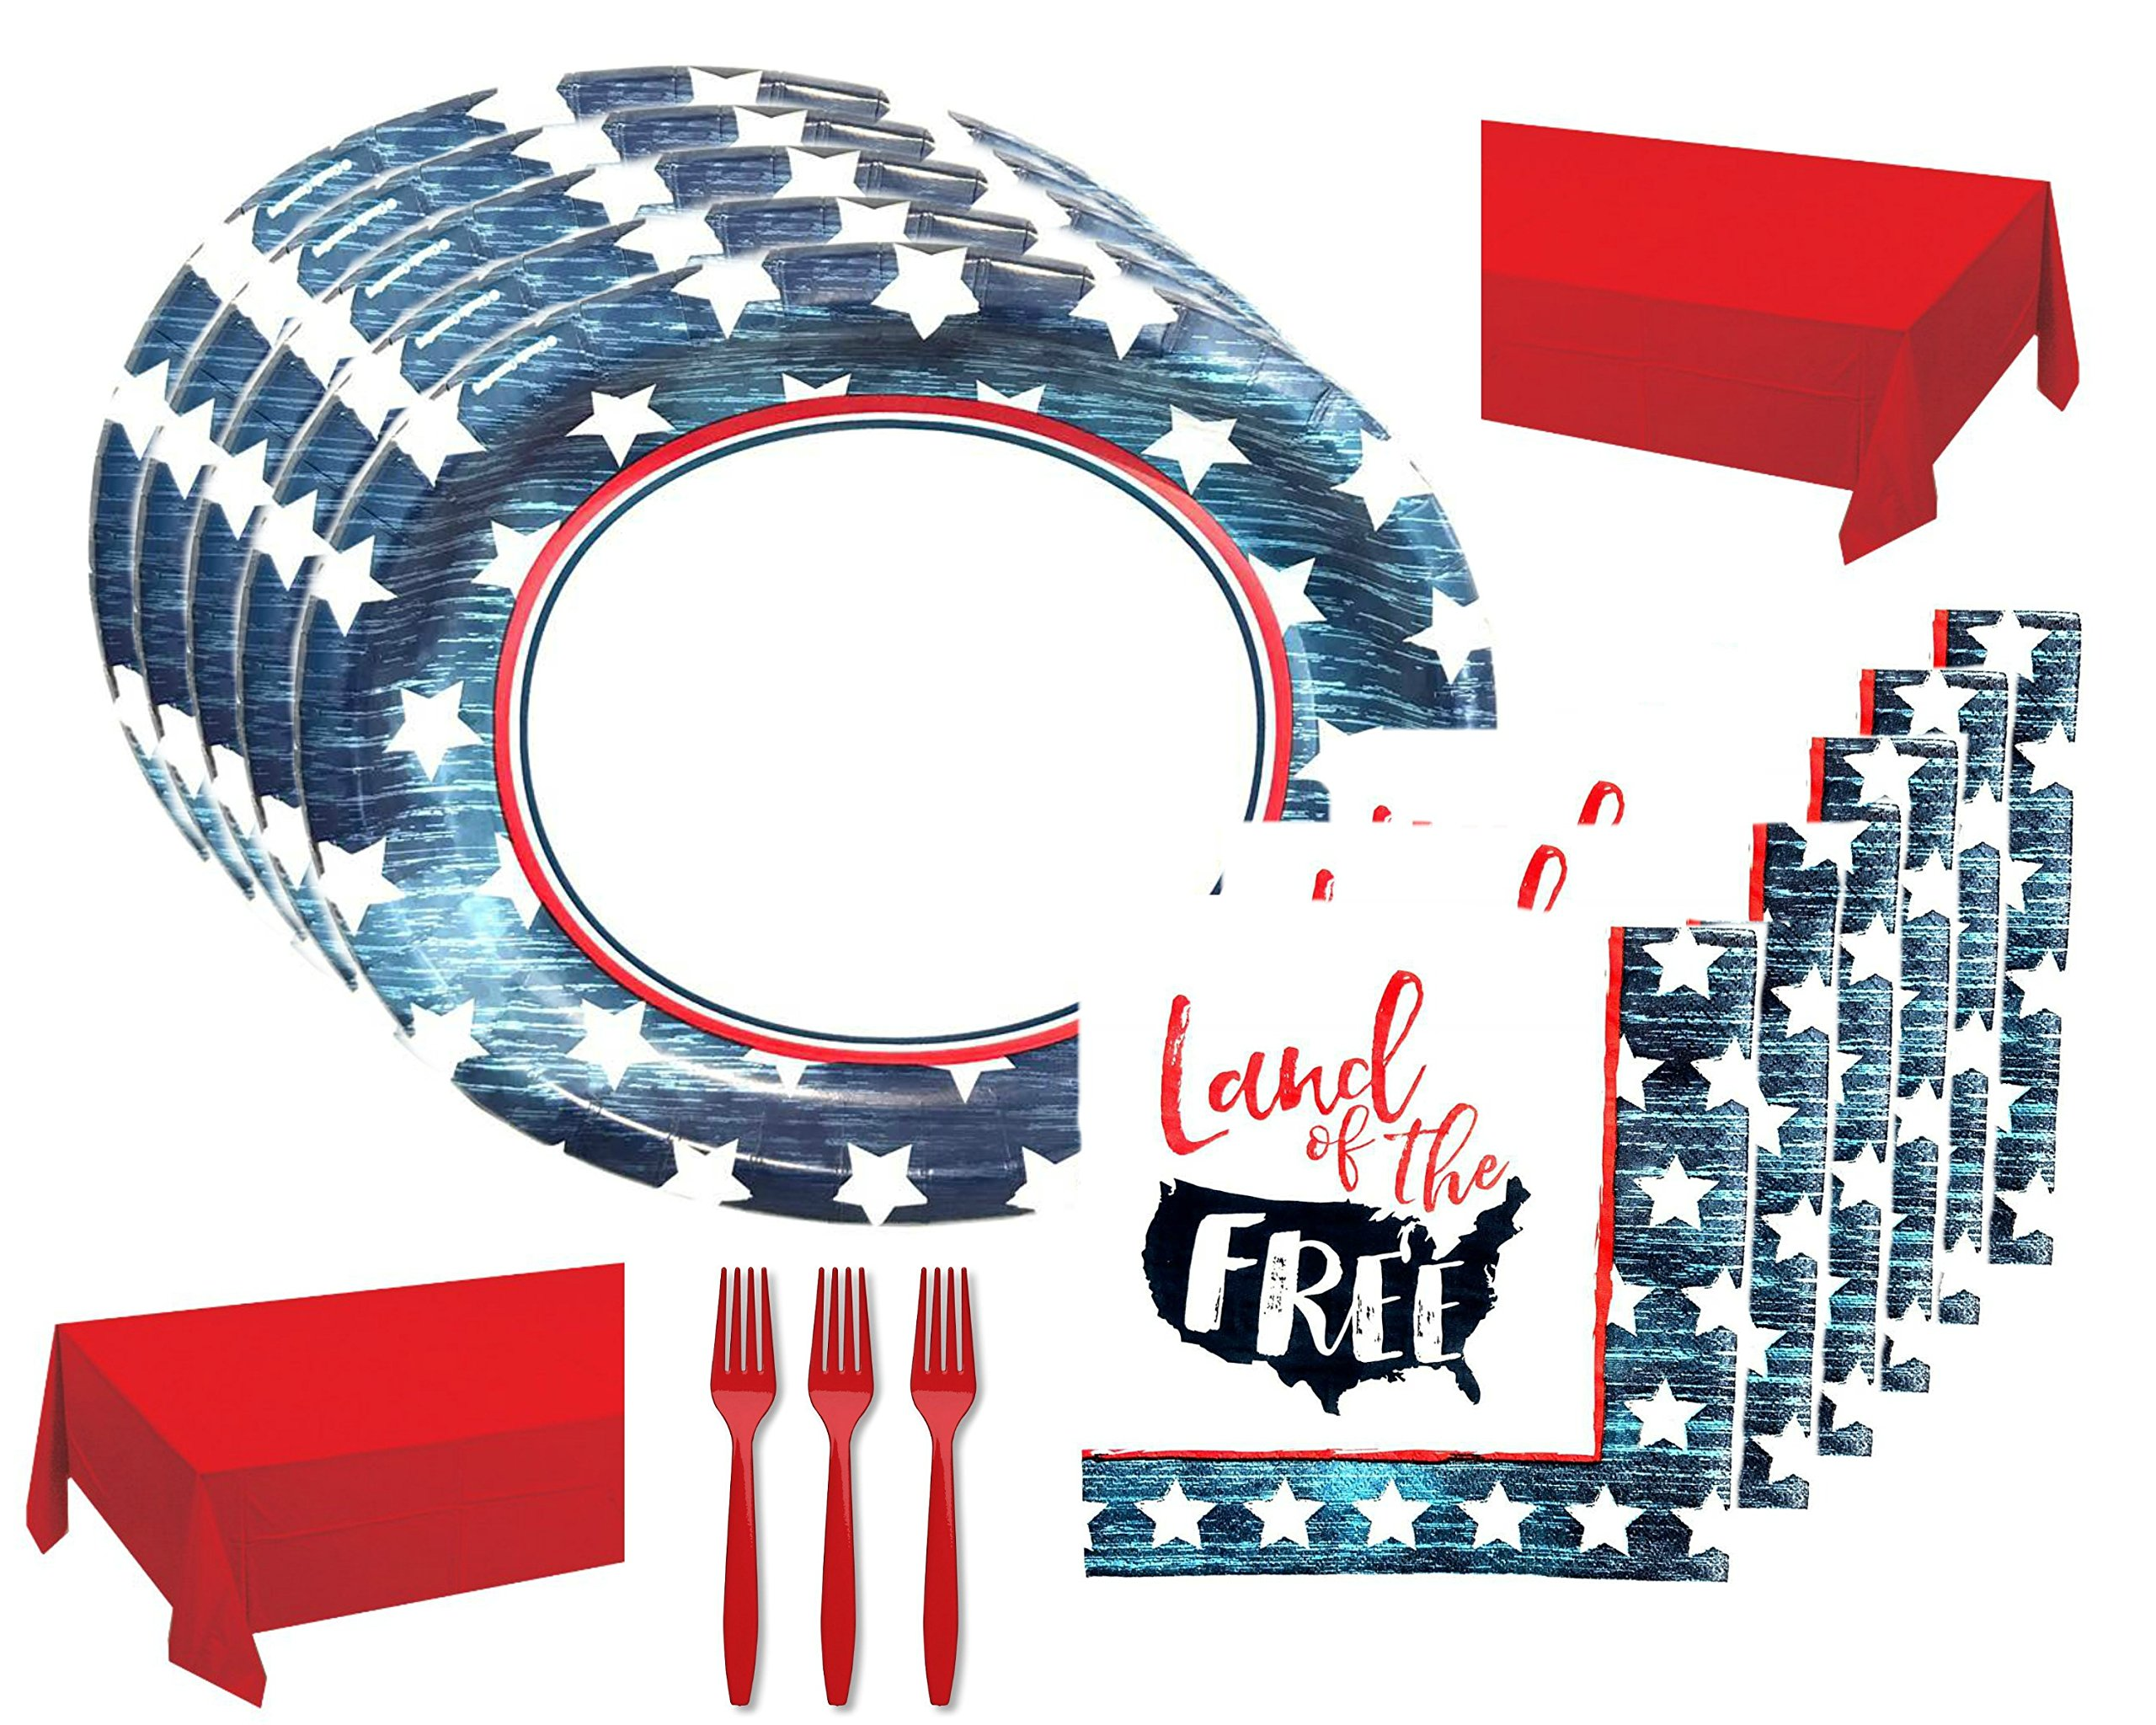 Rustic Patriotic July 4th Party Supply Mega Bundle for 48 Guests, Land of the Free - Includes Platters, Napkins, Tablecovers and Forks